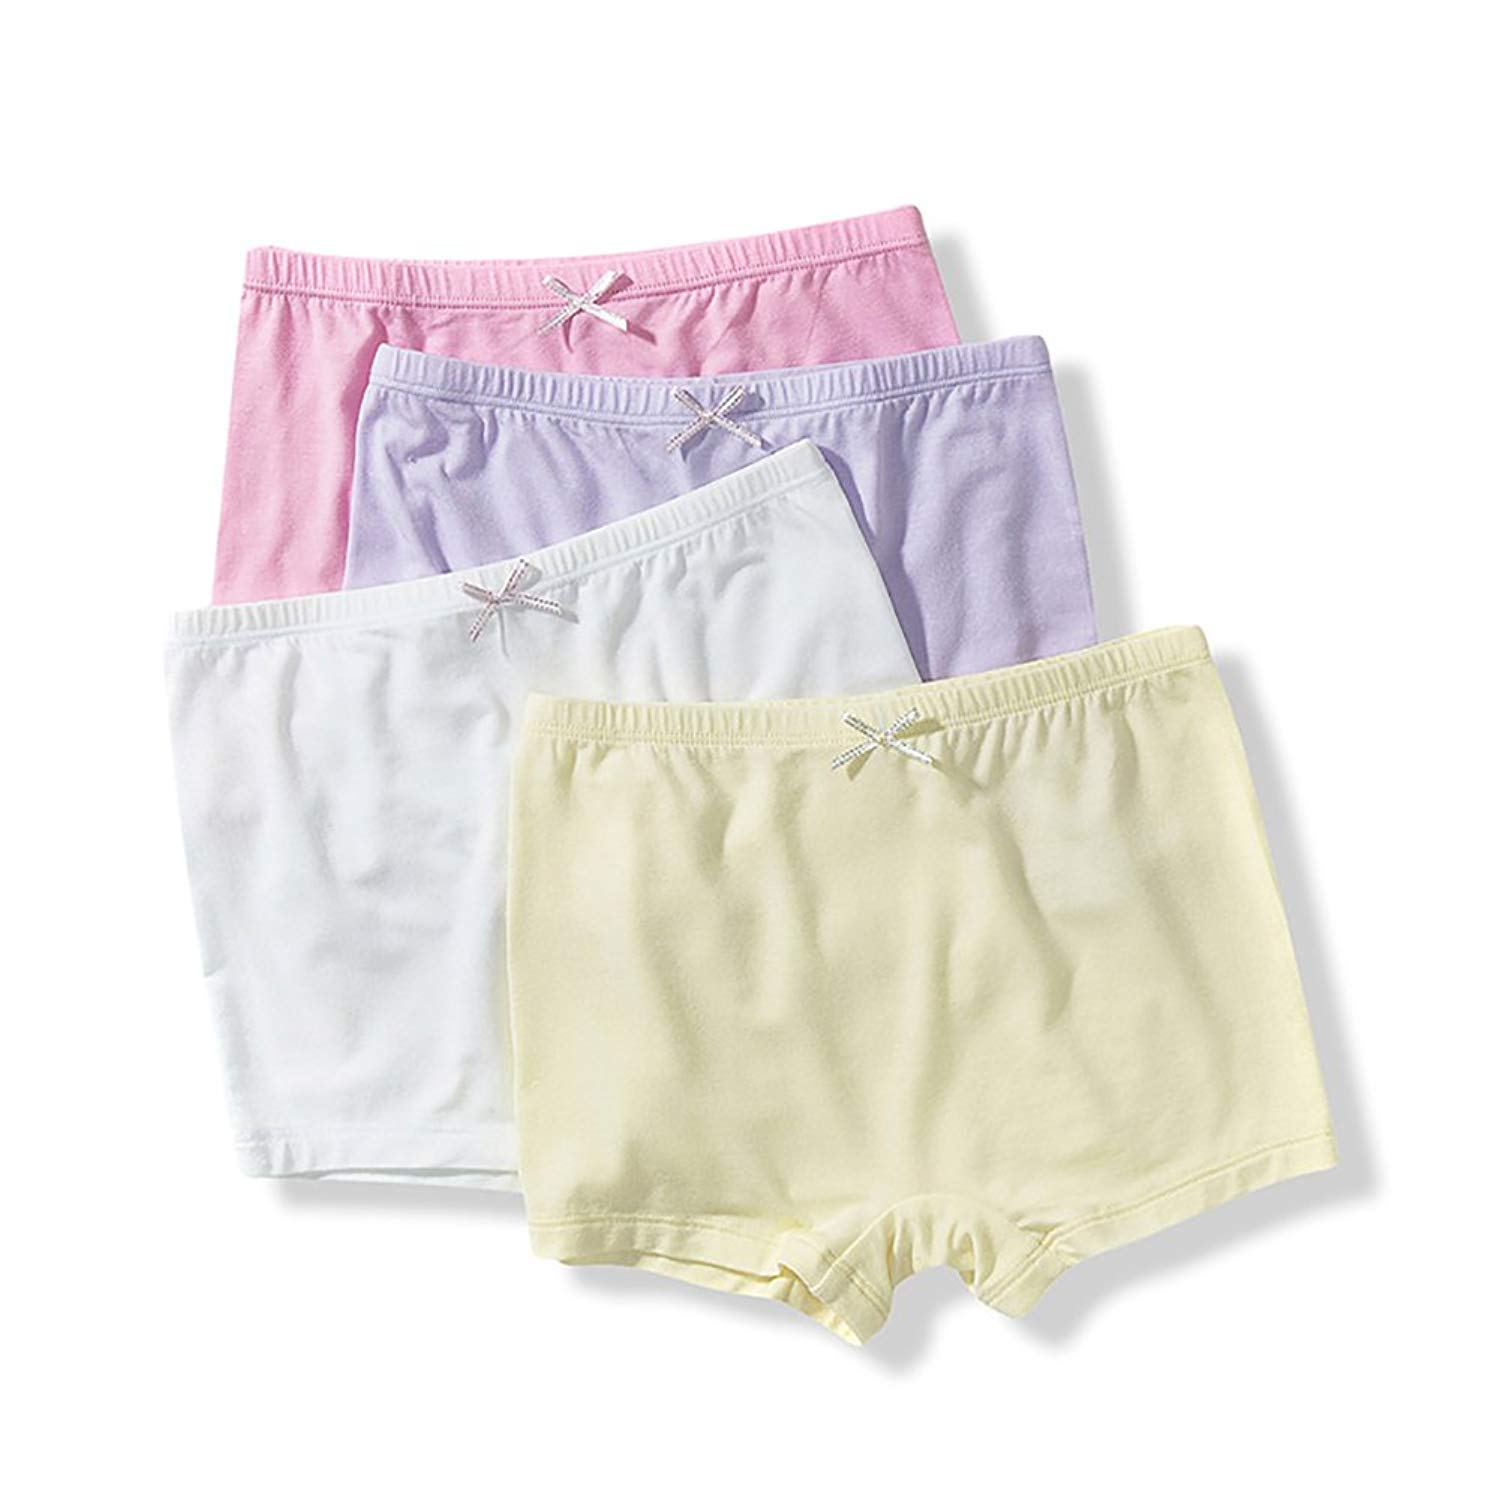 Threegunkids Girls Underwear Set Soft Cotton Briefs Boyshort Kids Panties 4 Pack